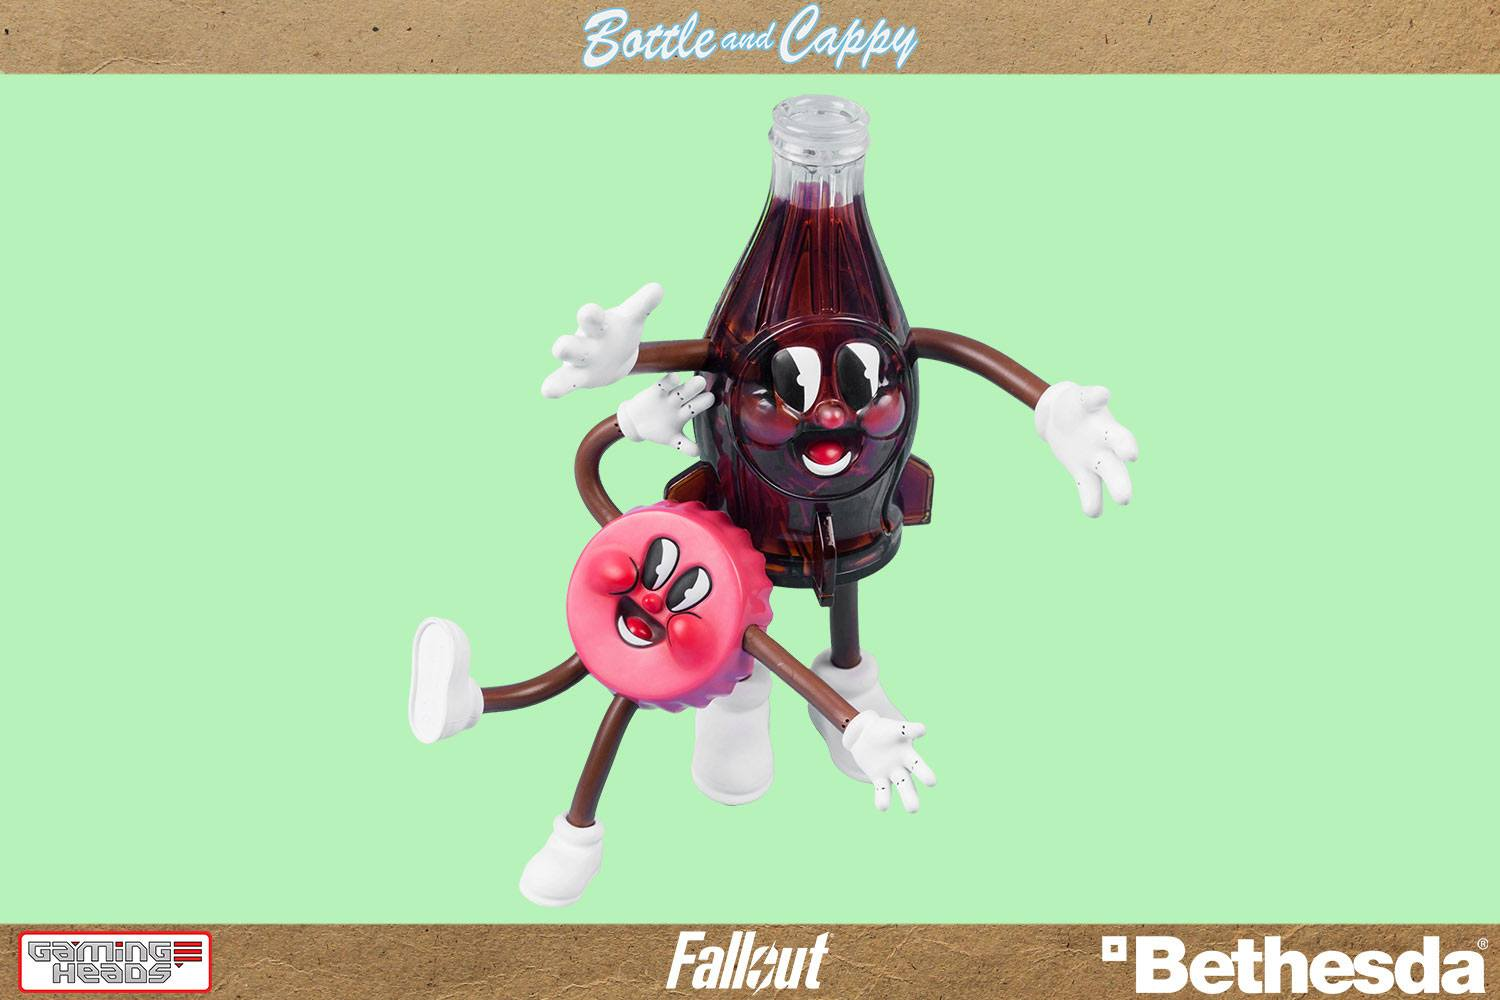 Fallout Bendable Figures 2-Pack Bottle & Cappy 9 - 18 cm --- DAMAGED PACKAGING